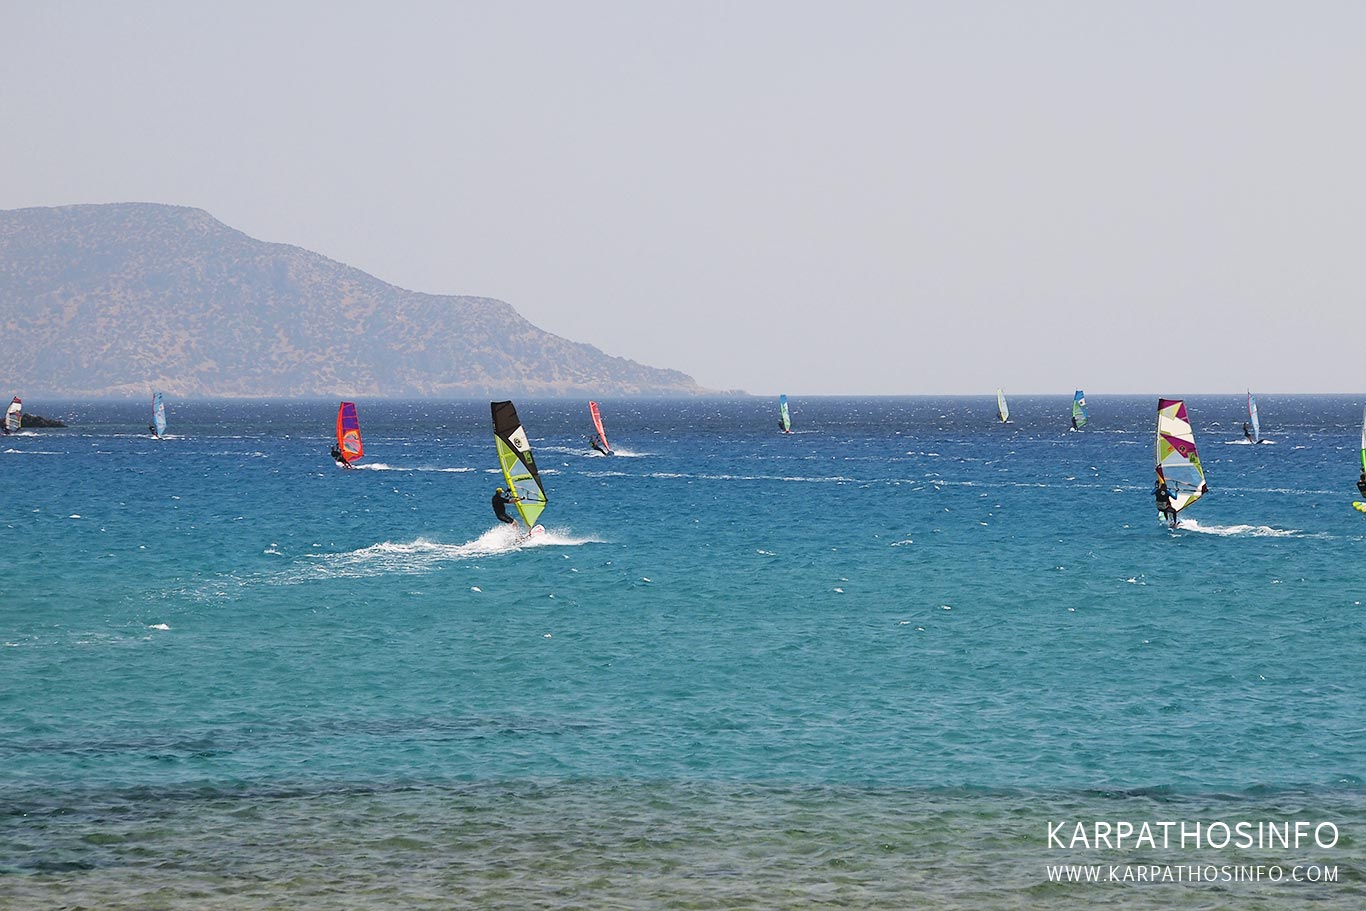 Windsurfing in Karpathos island, Greece